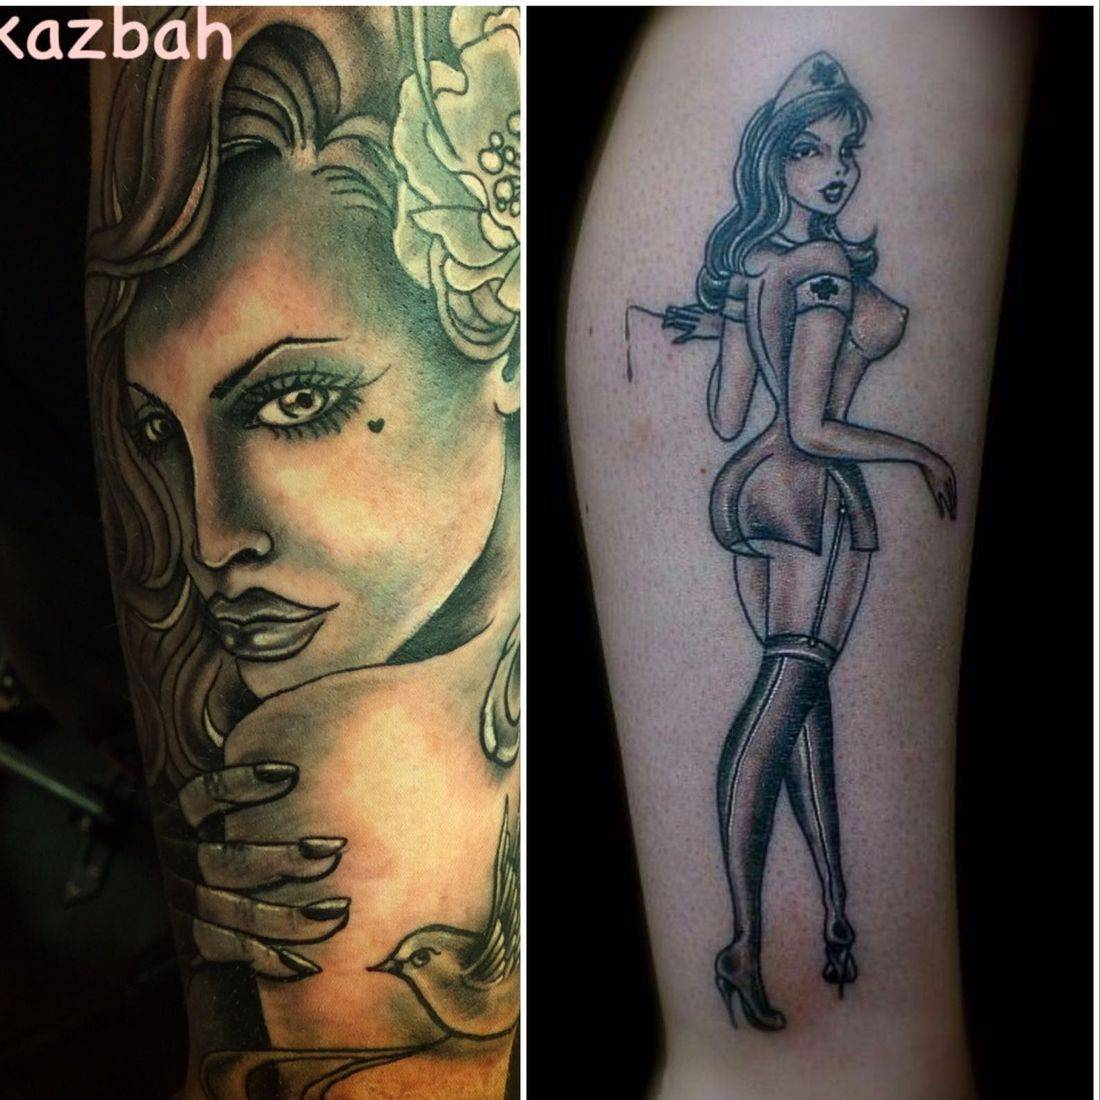 Pin up girl tattoo by mcgoldtooth at kazbah tattoo studio Leicester